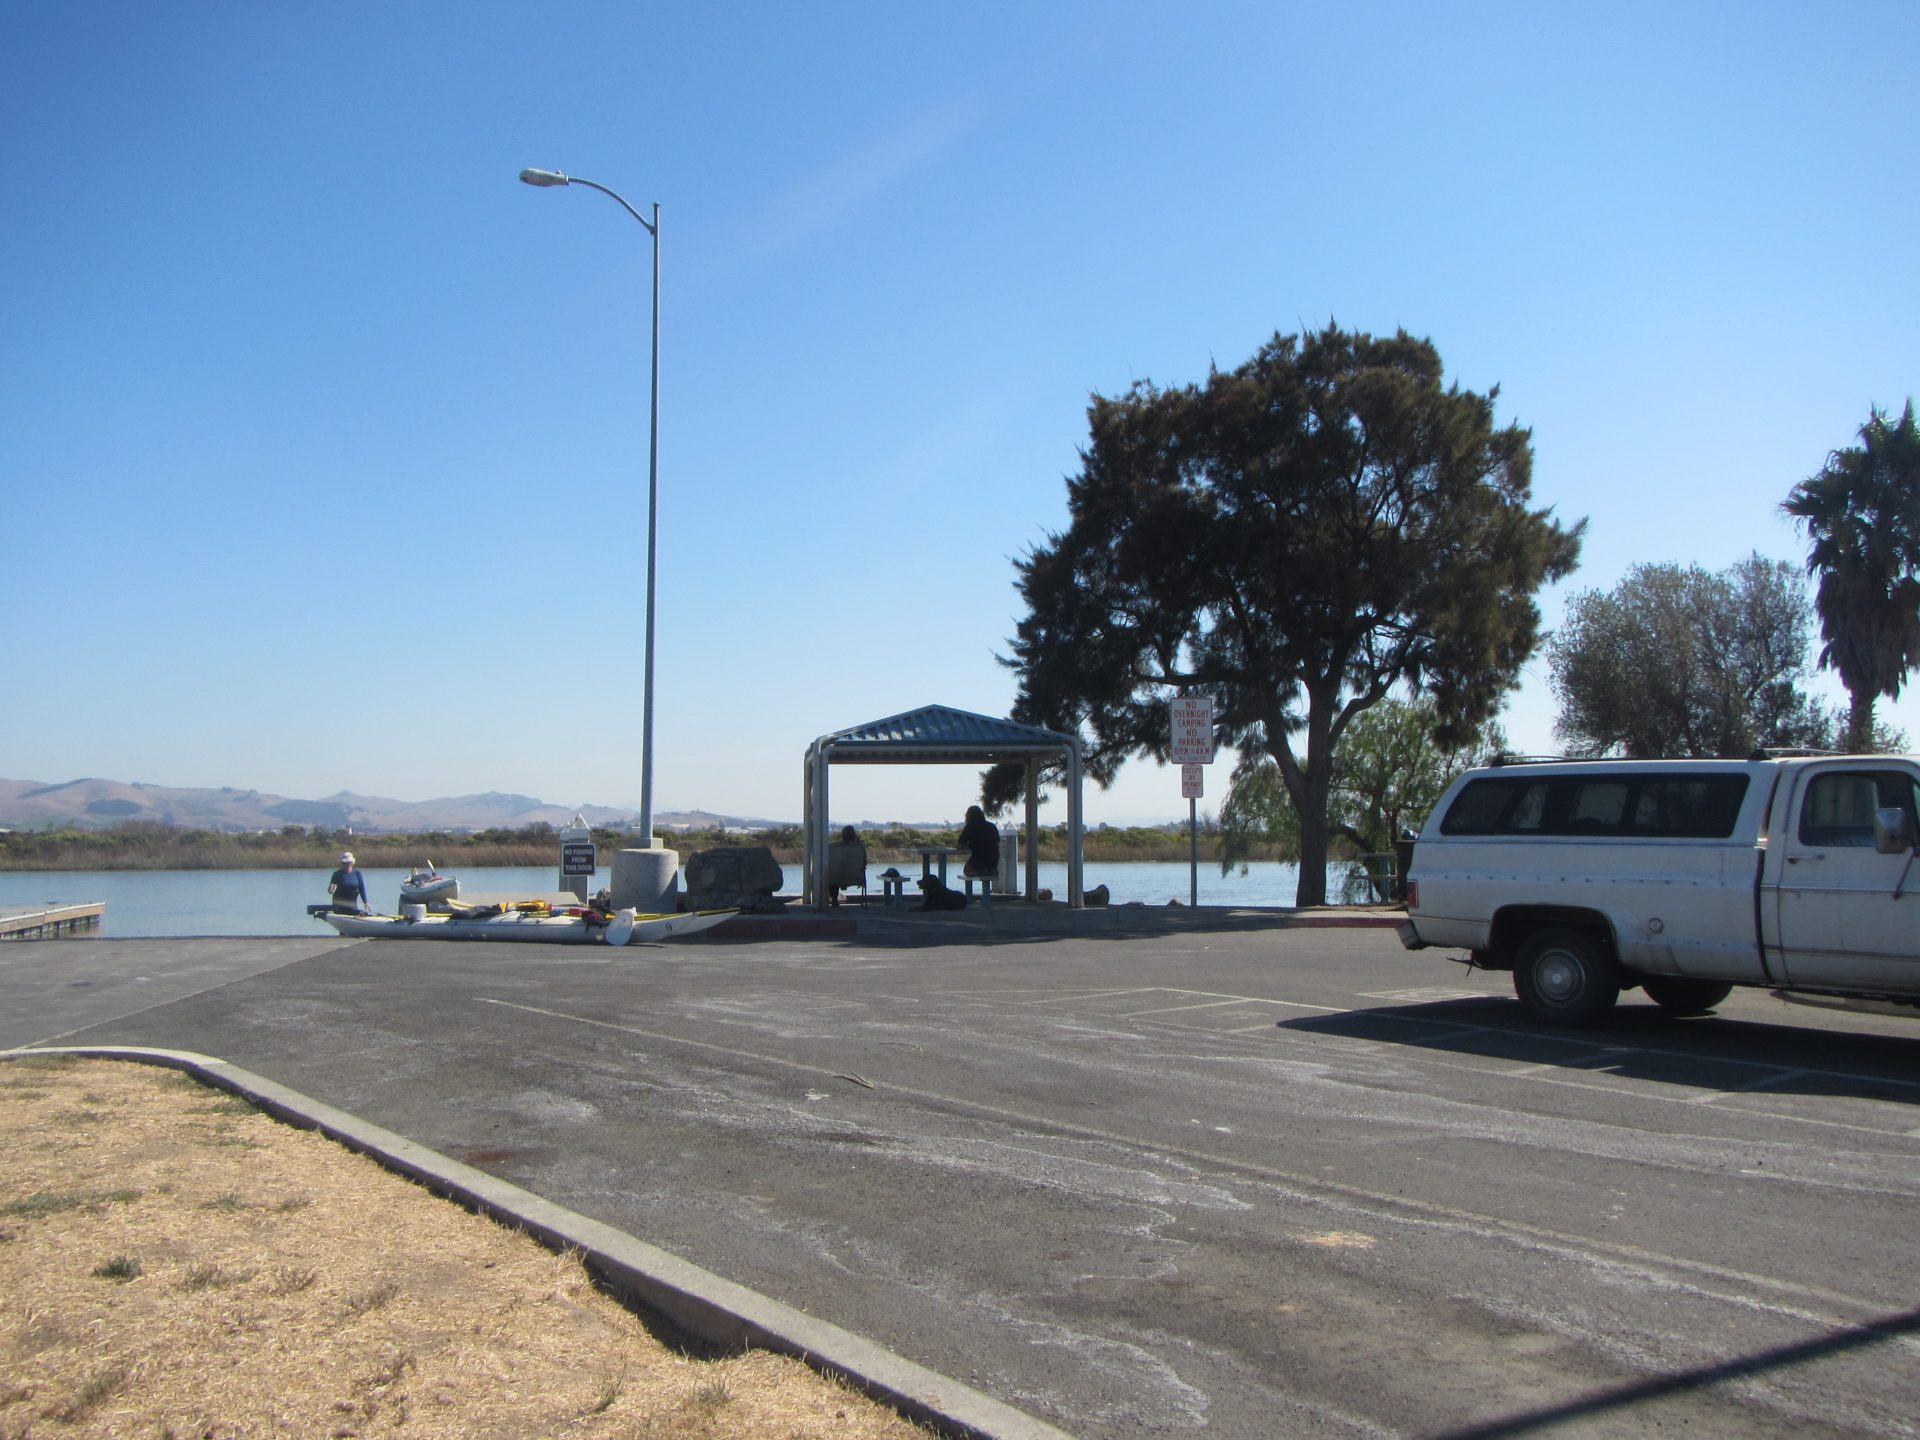 View across parking lot to shade structure